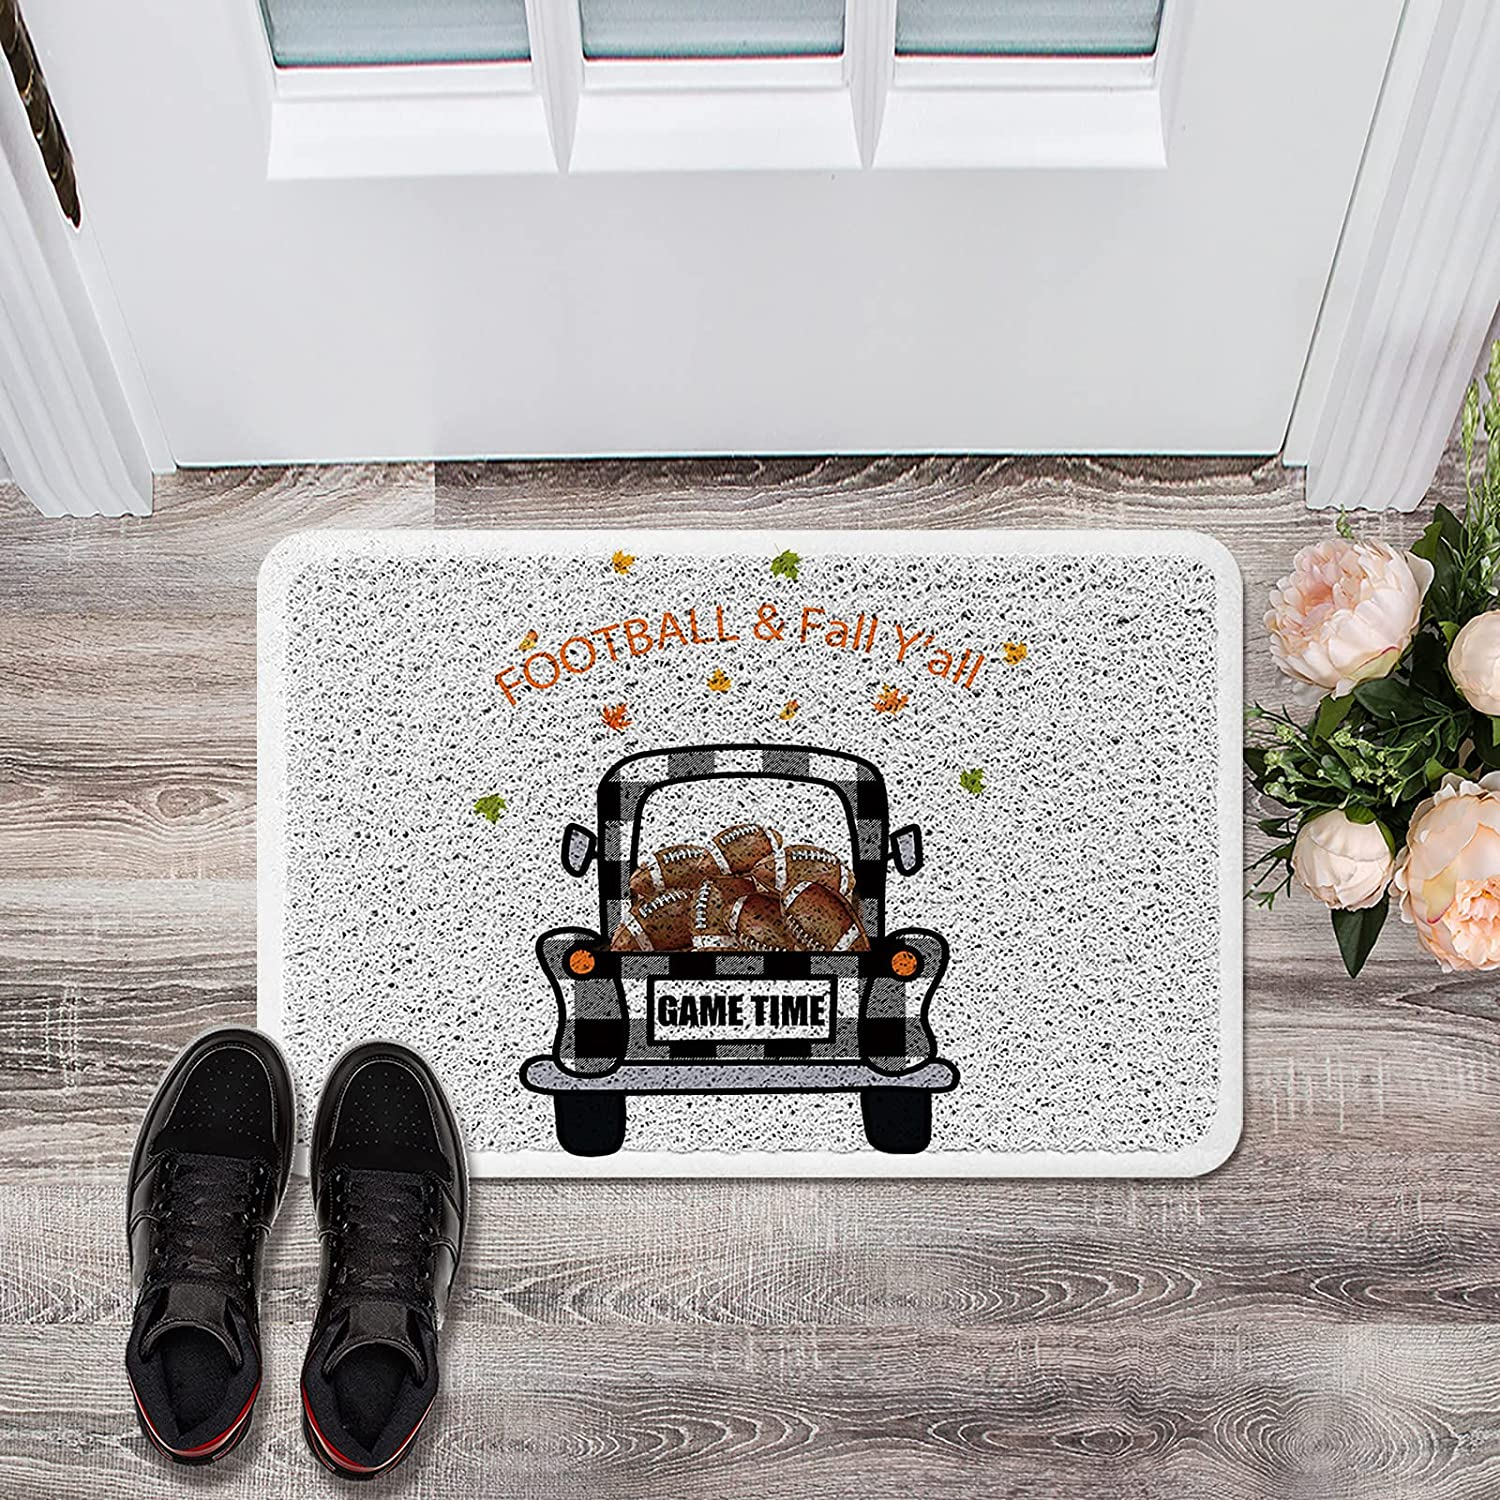 famous Doormat Front Door Sales Mat Footfall Fall Y'all Black Rugby White and